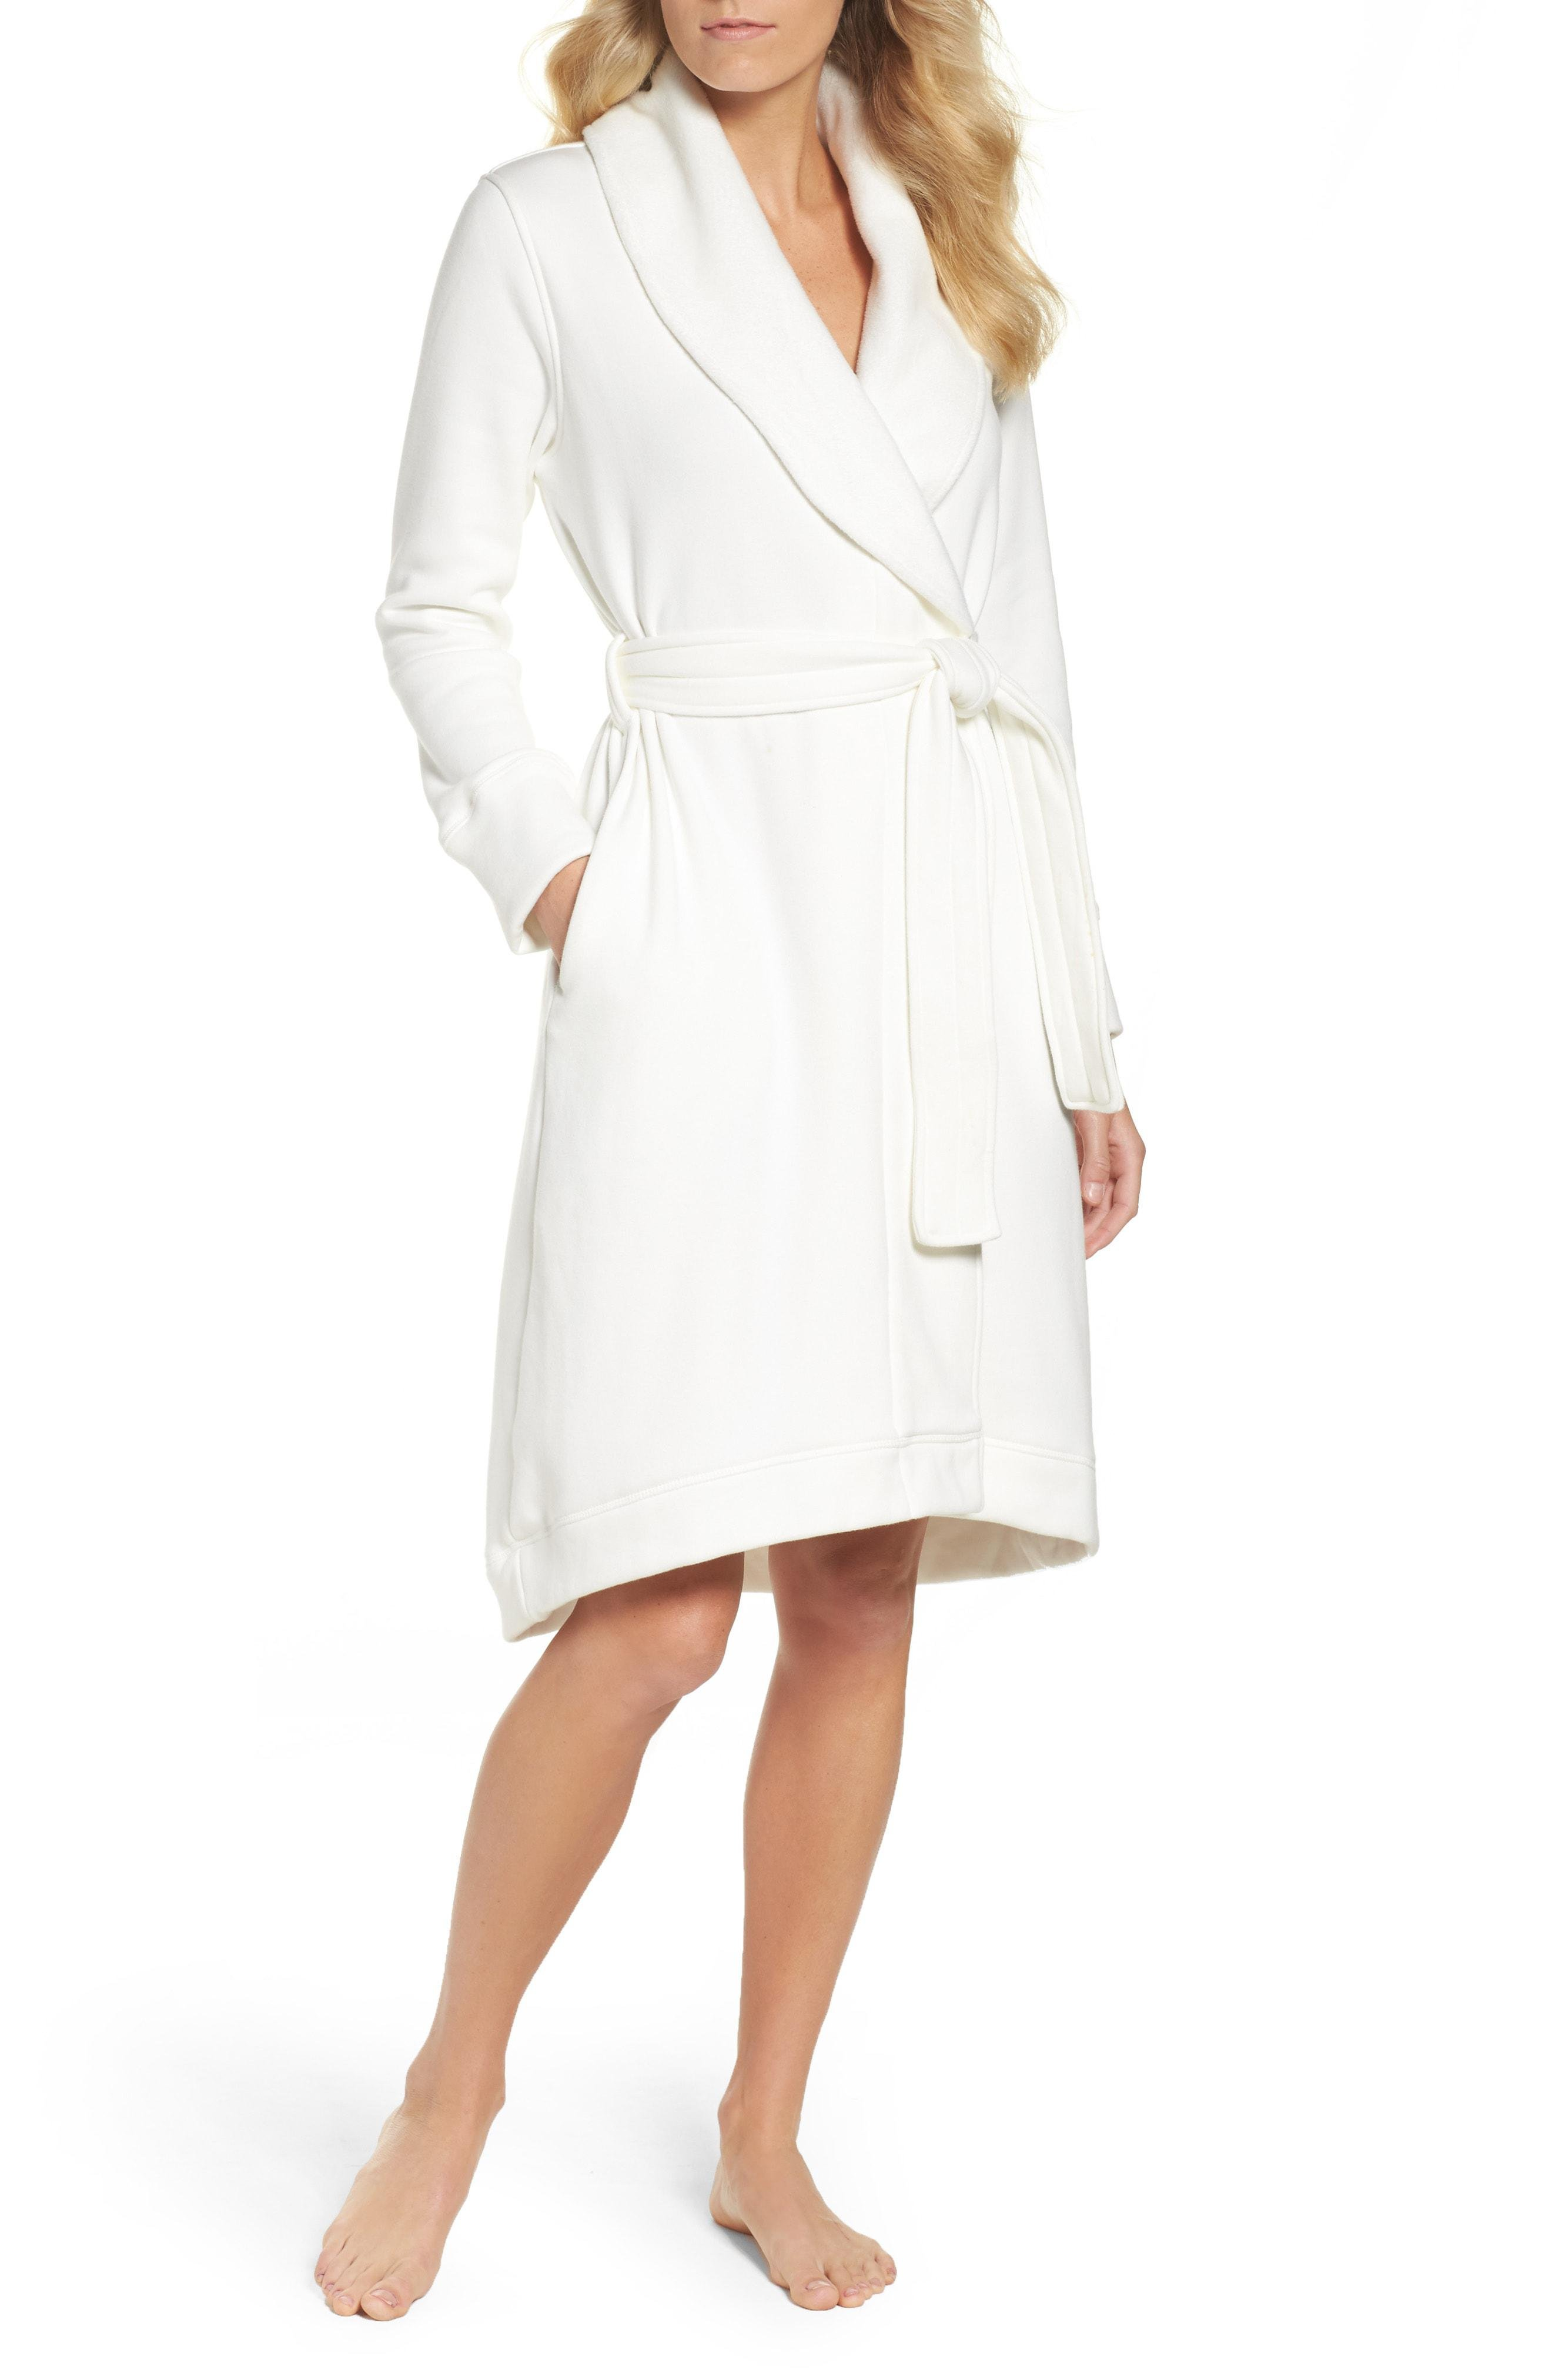 Lyst - UGG Ugg Duffield Double Knit Robe 596cbcf5d